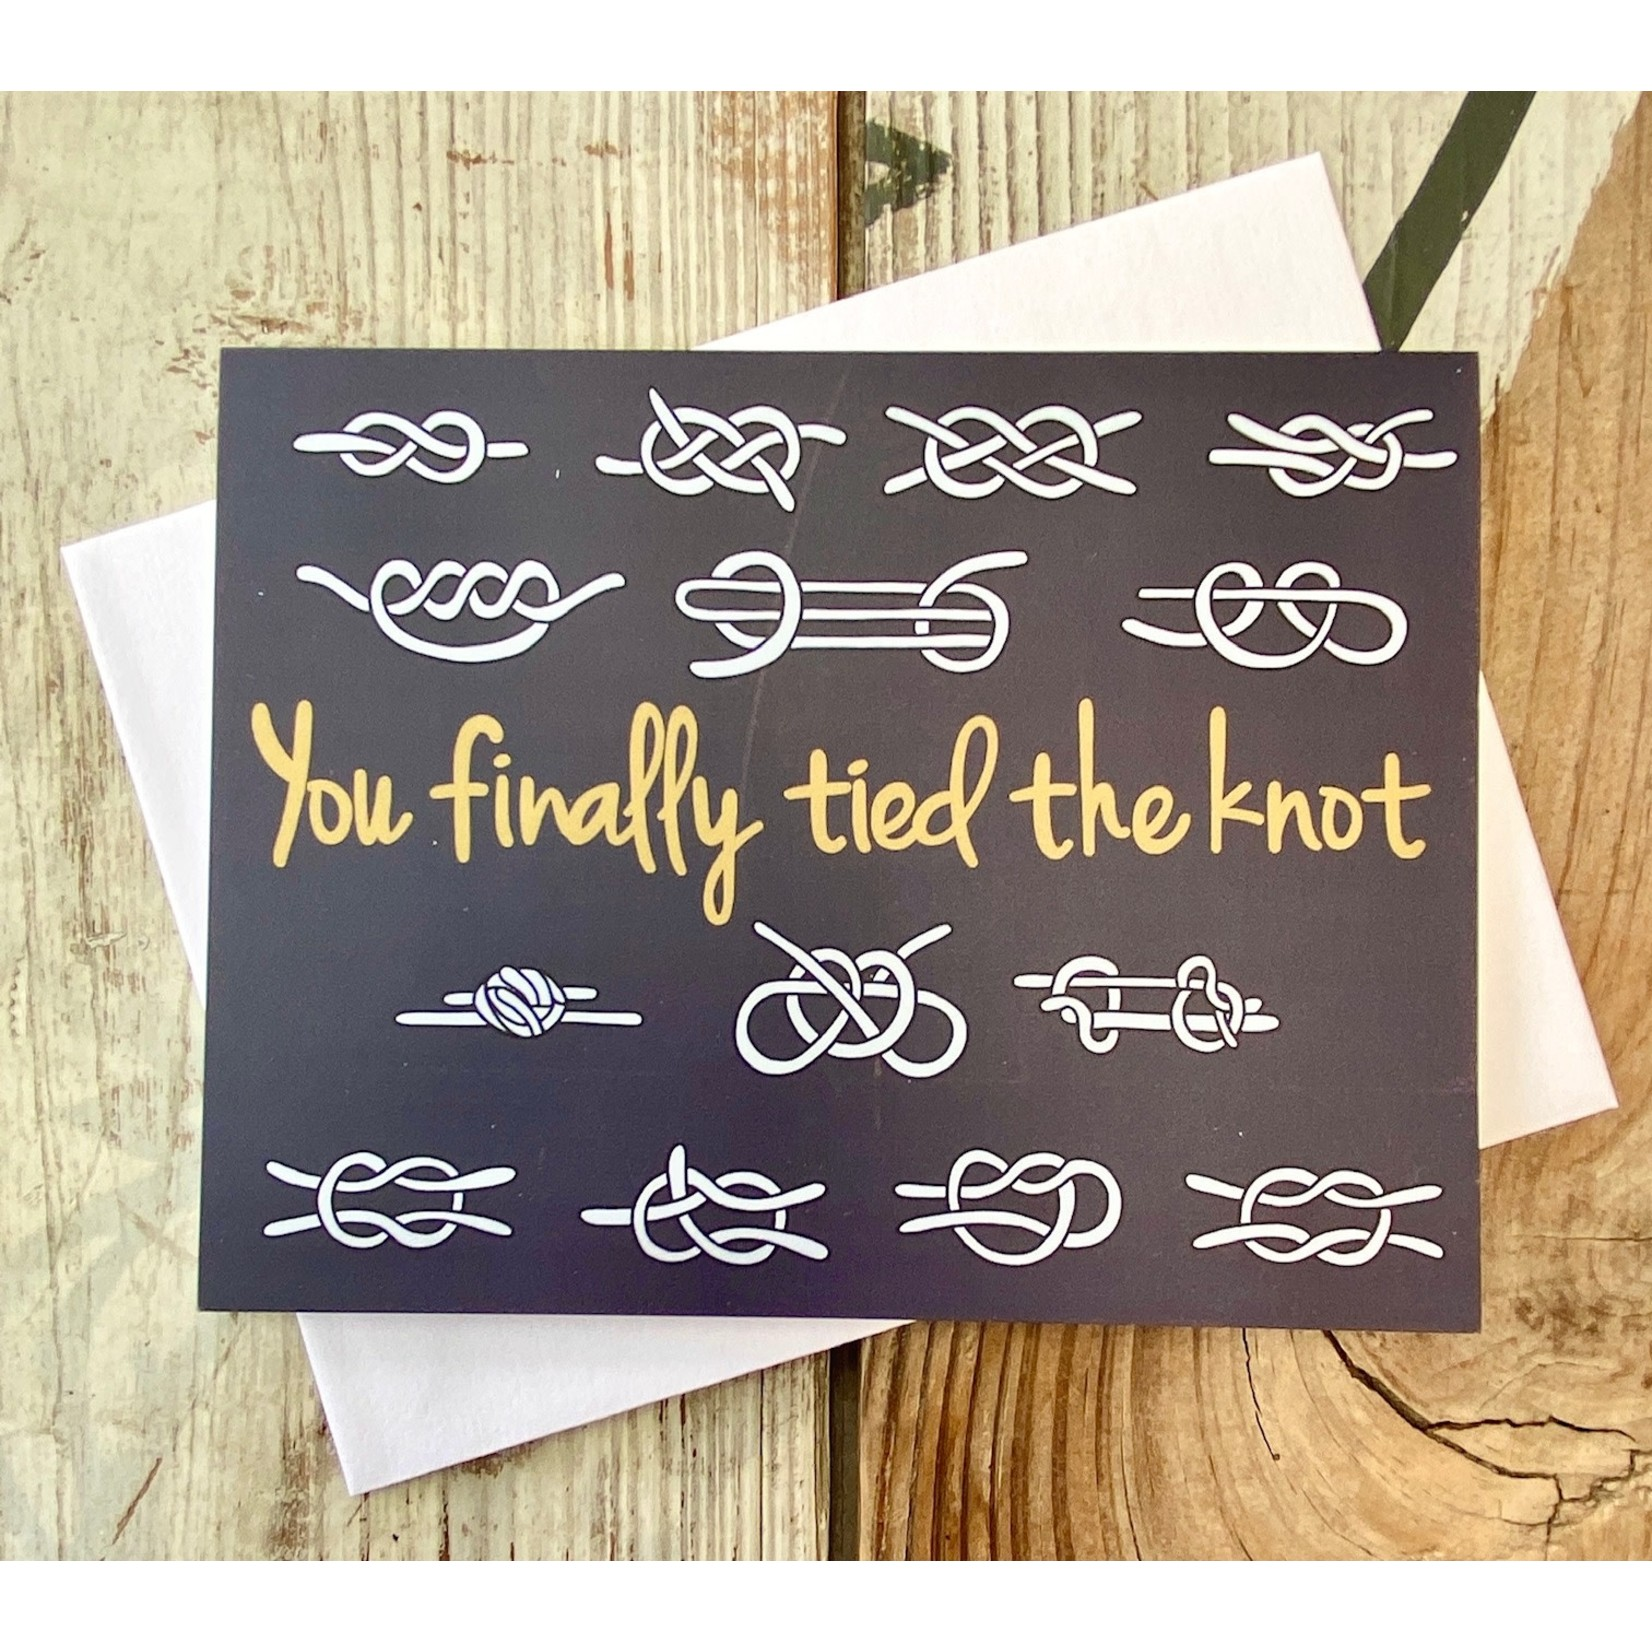 Fiber and Gloss Knots Finally Tied The Knot Greeting Card